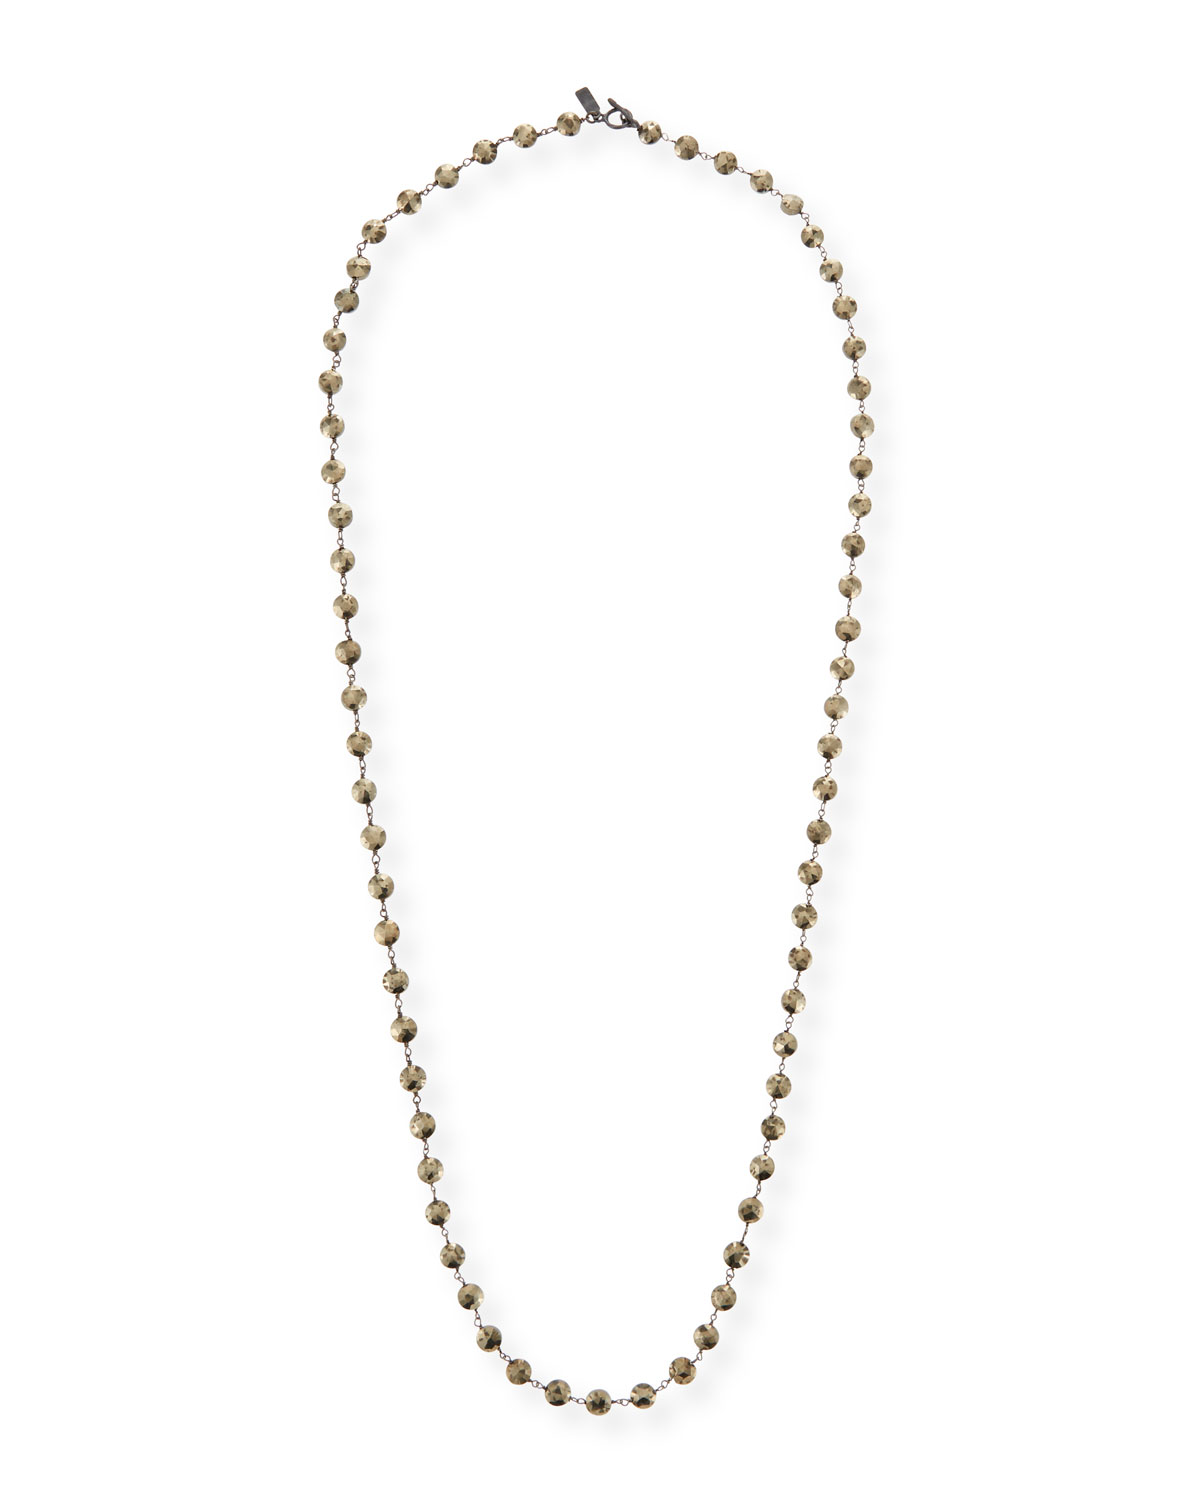 MARGO MORRISON Long Pyrite & Chain Necklace